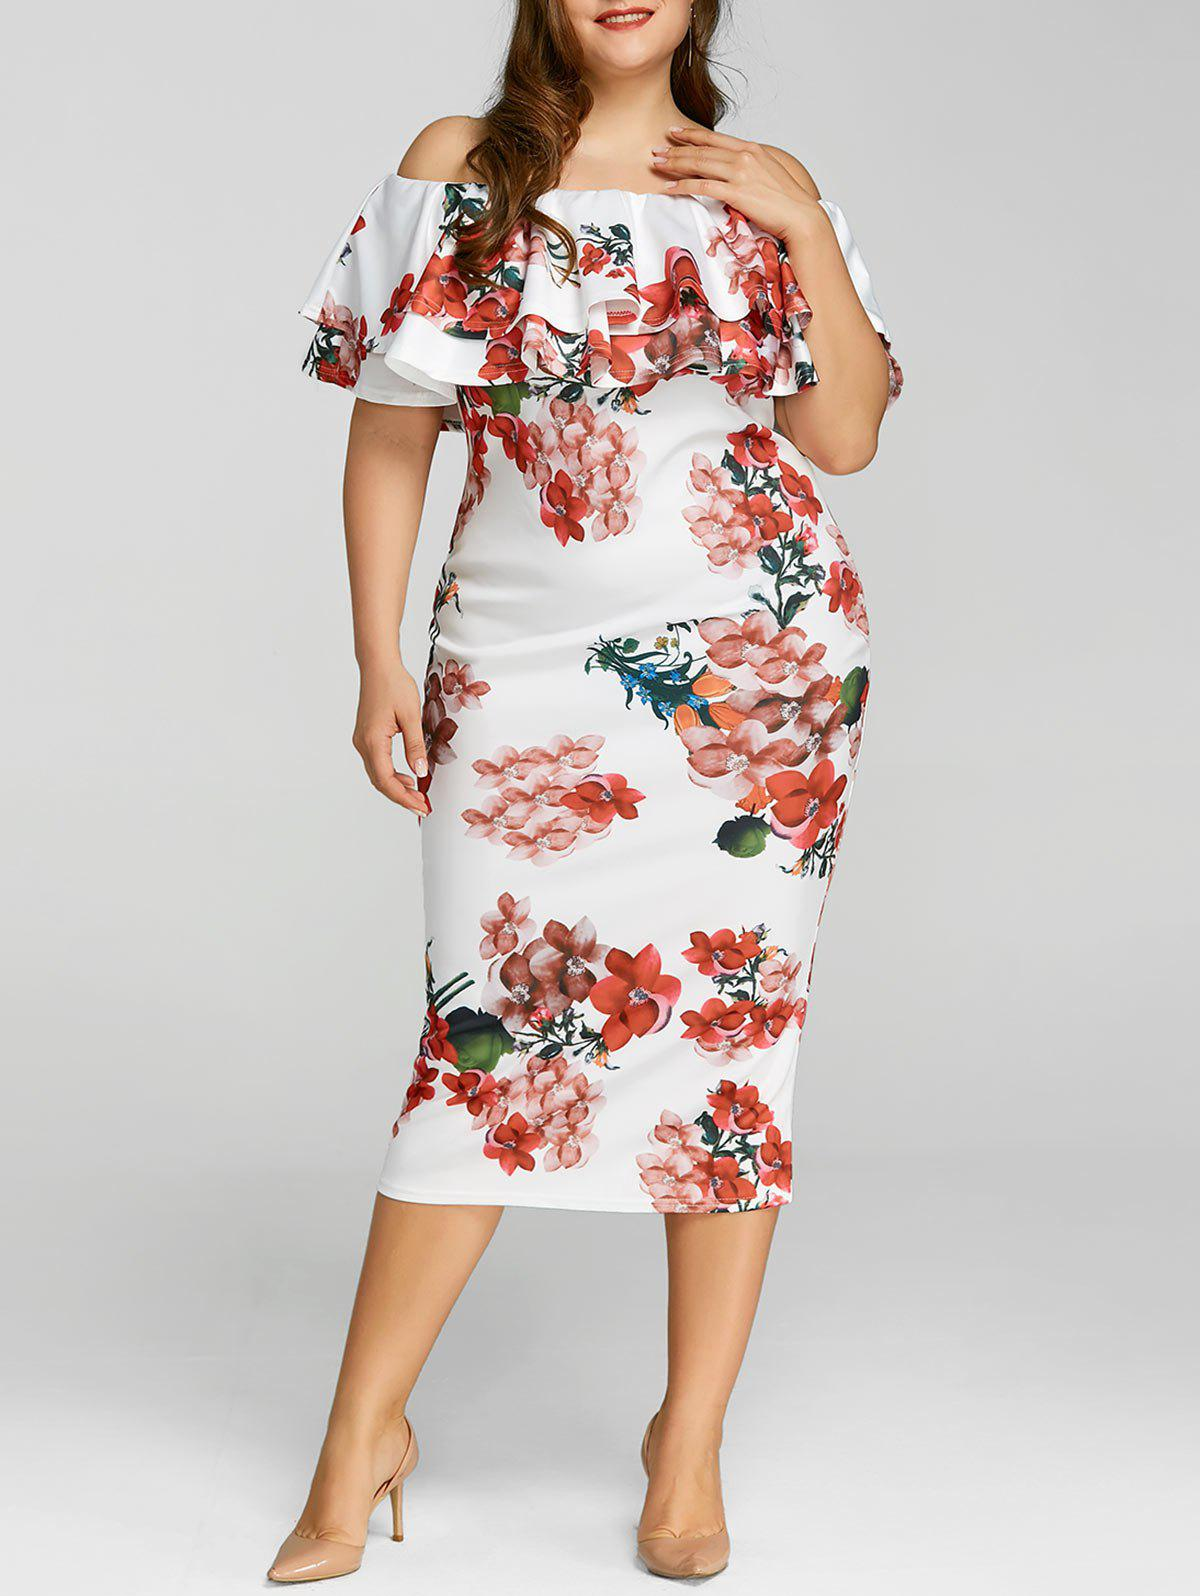 White 3xl Plus Size Ruffle Floral Print Dress